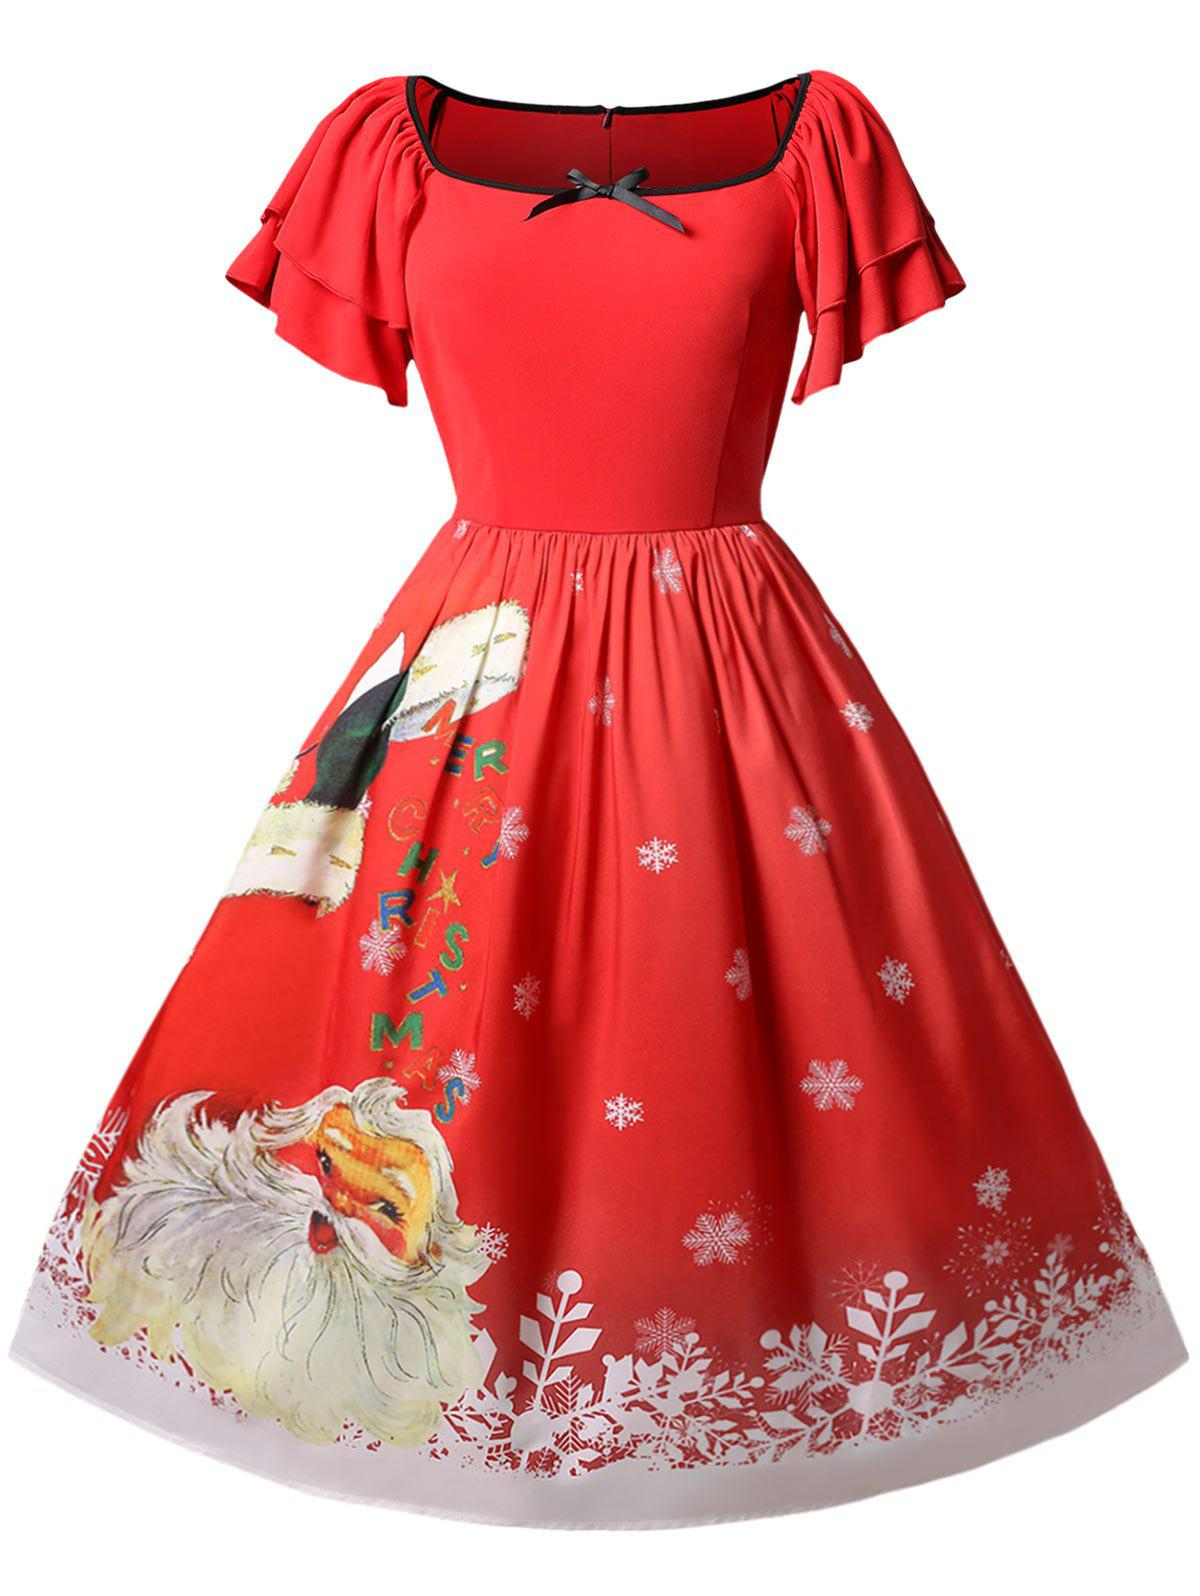 Latest Christmas Plus Size Santa Claus Print Vintage Dress